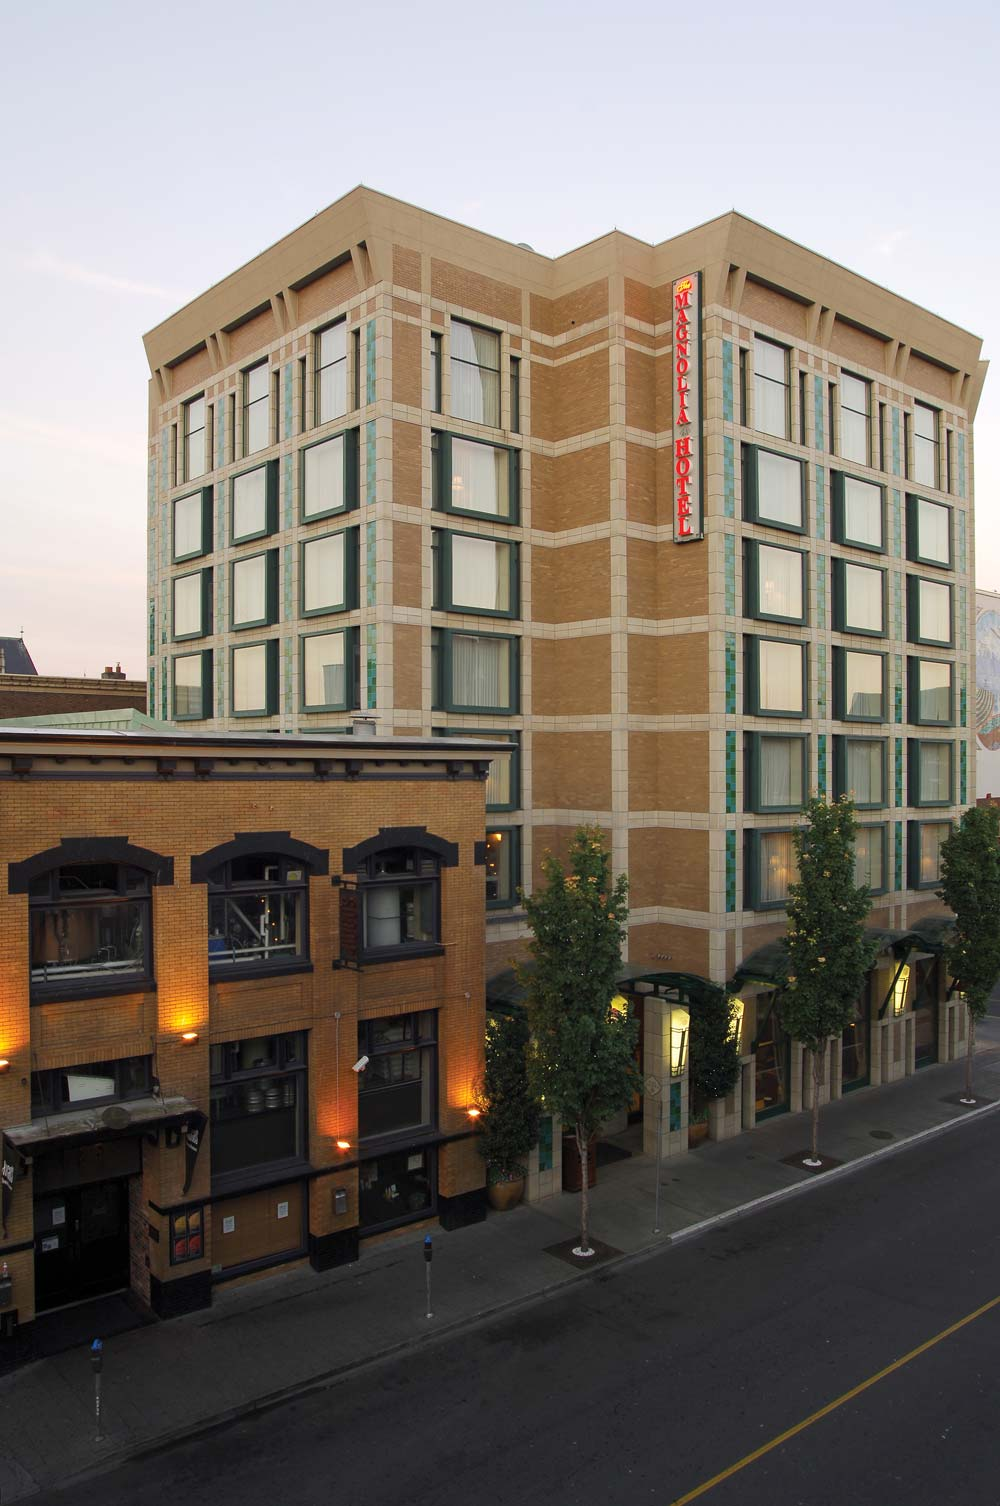 Exterior of  Magnolia Hotel And Spa, Victoria, Canada